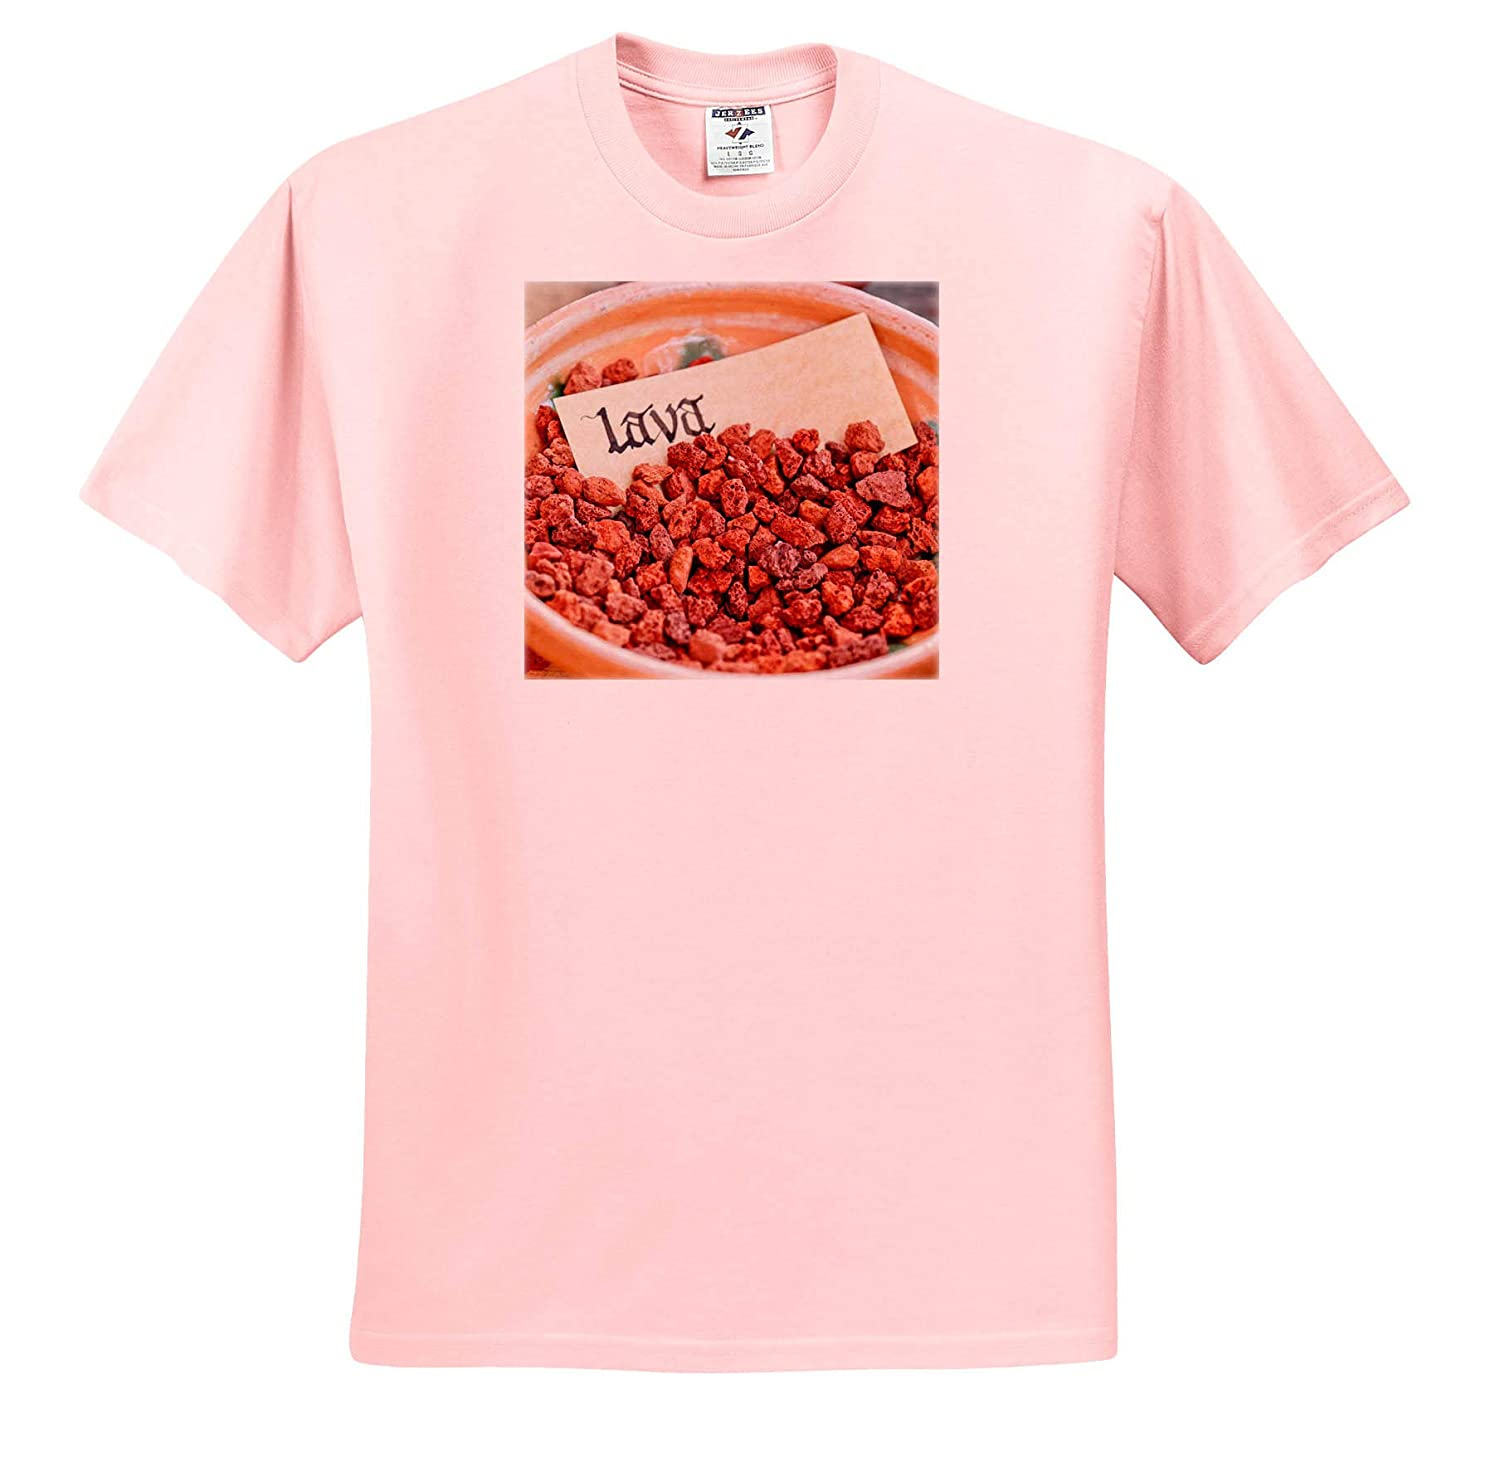 T-Shirts The Text Lave on a Paper in The Bowl 3dRose Alexis Photography Objects Misc - Ceramic Bowl with Volcanic Lava